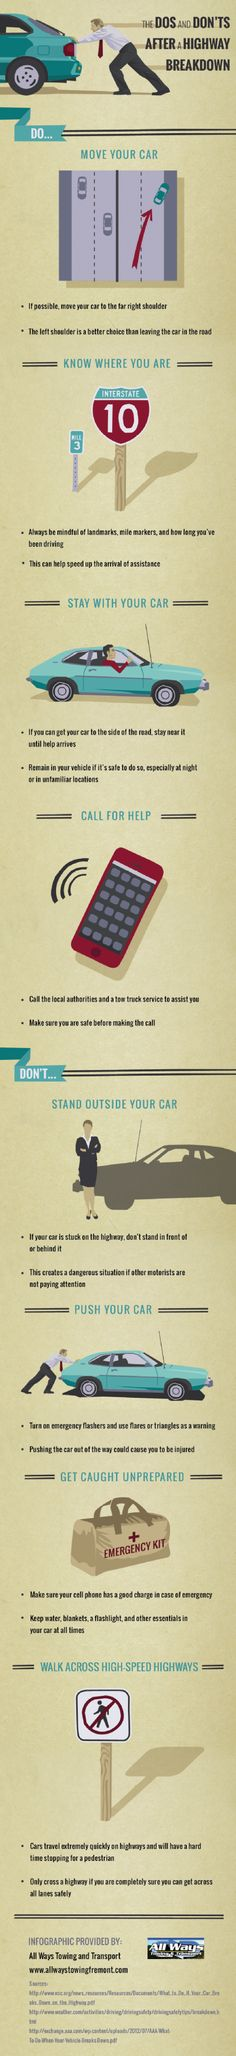 No one wants their car to break down anywhere. But if itll do, make sure you are prepared for it. Find out how to stay safe during highway travels. # We Educate Travellers for More Productive, Efficient and Safer Travel! http://intelligenttravel.com.au/